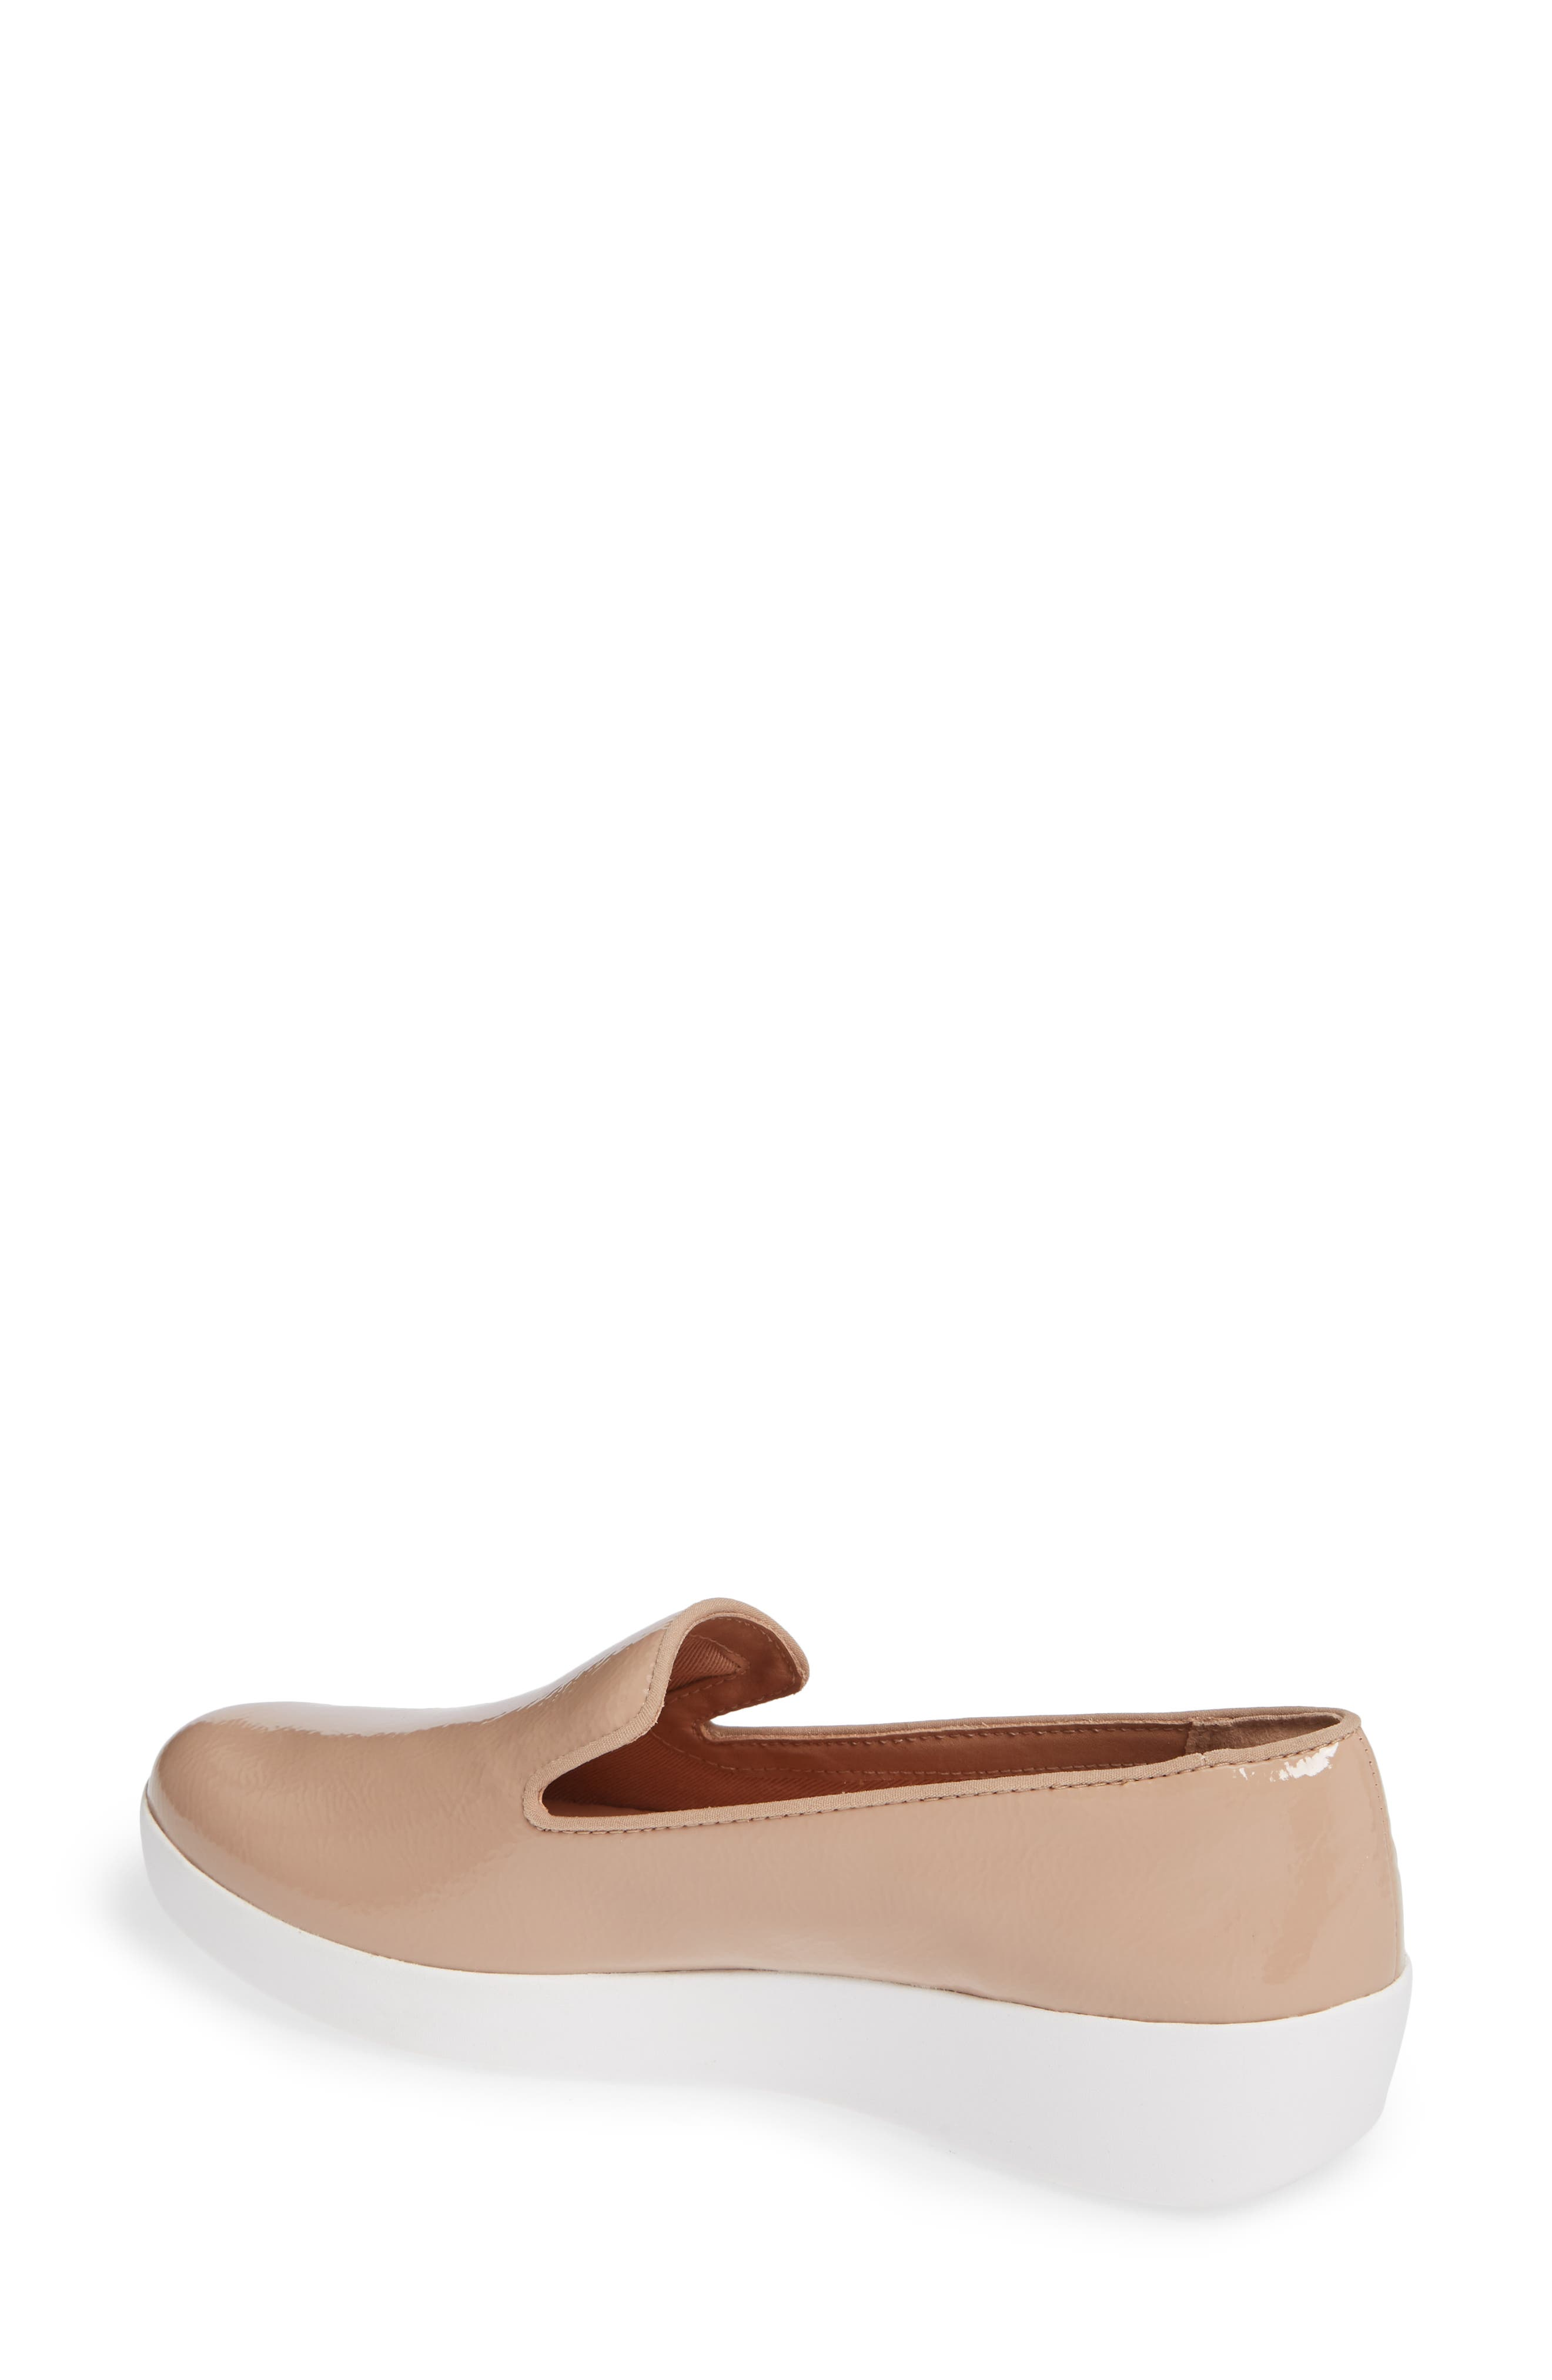 Audrey Smoking Slipper,                             Alternate thumbnail 2, color,                             TAUPE PATENT LEATHER